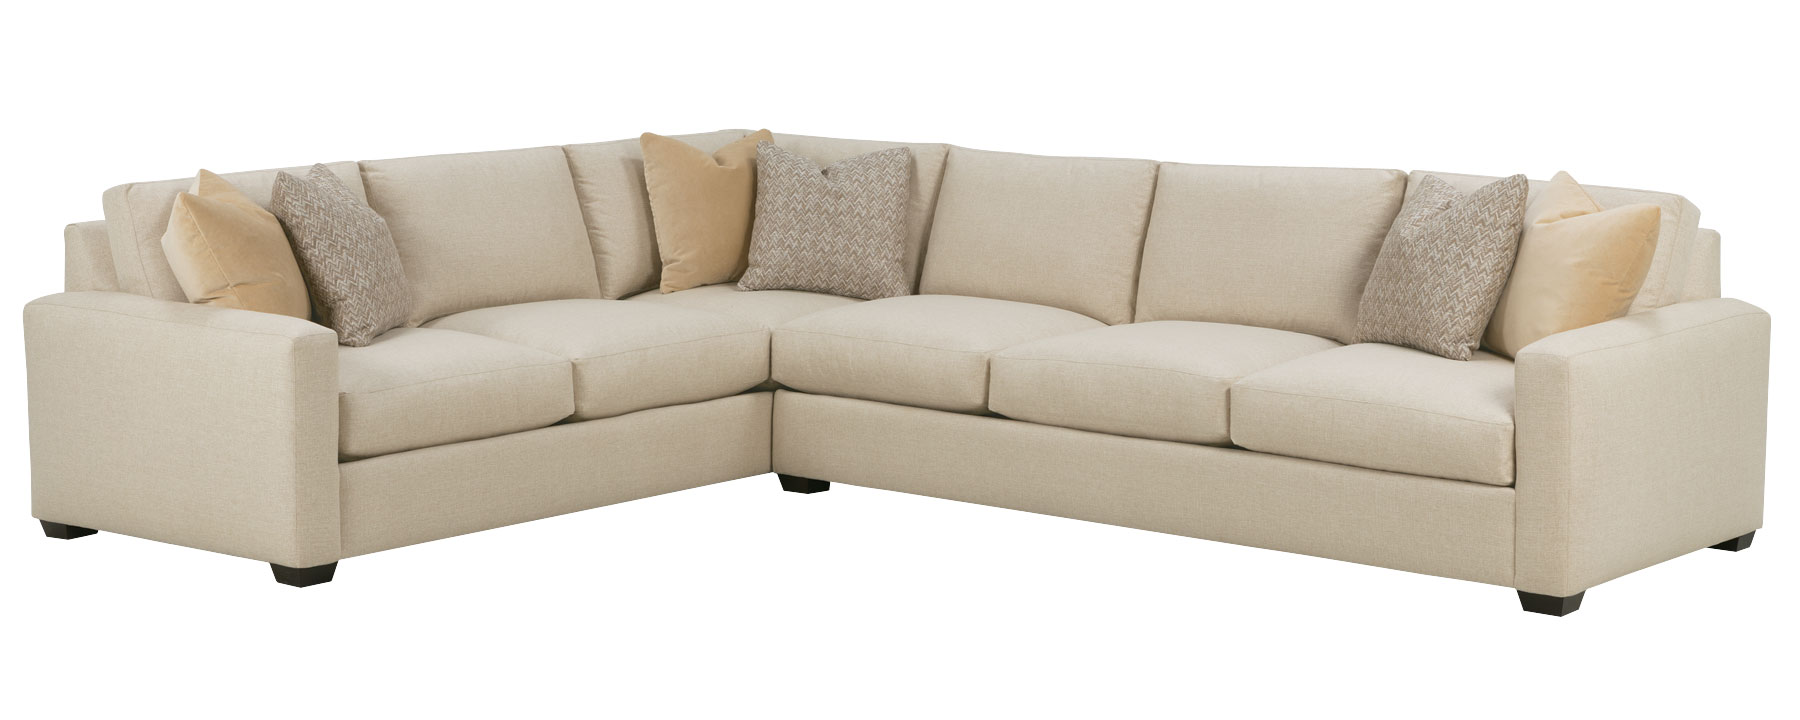 Deep seating large scale track arm sectional club furniture for Sectional sofas